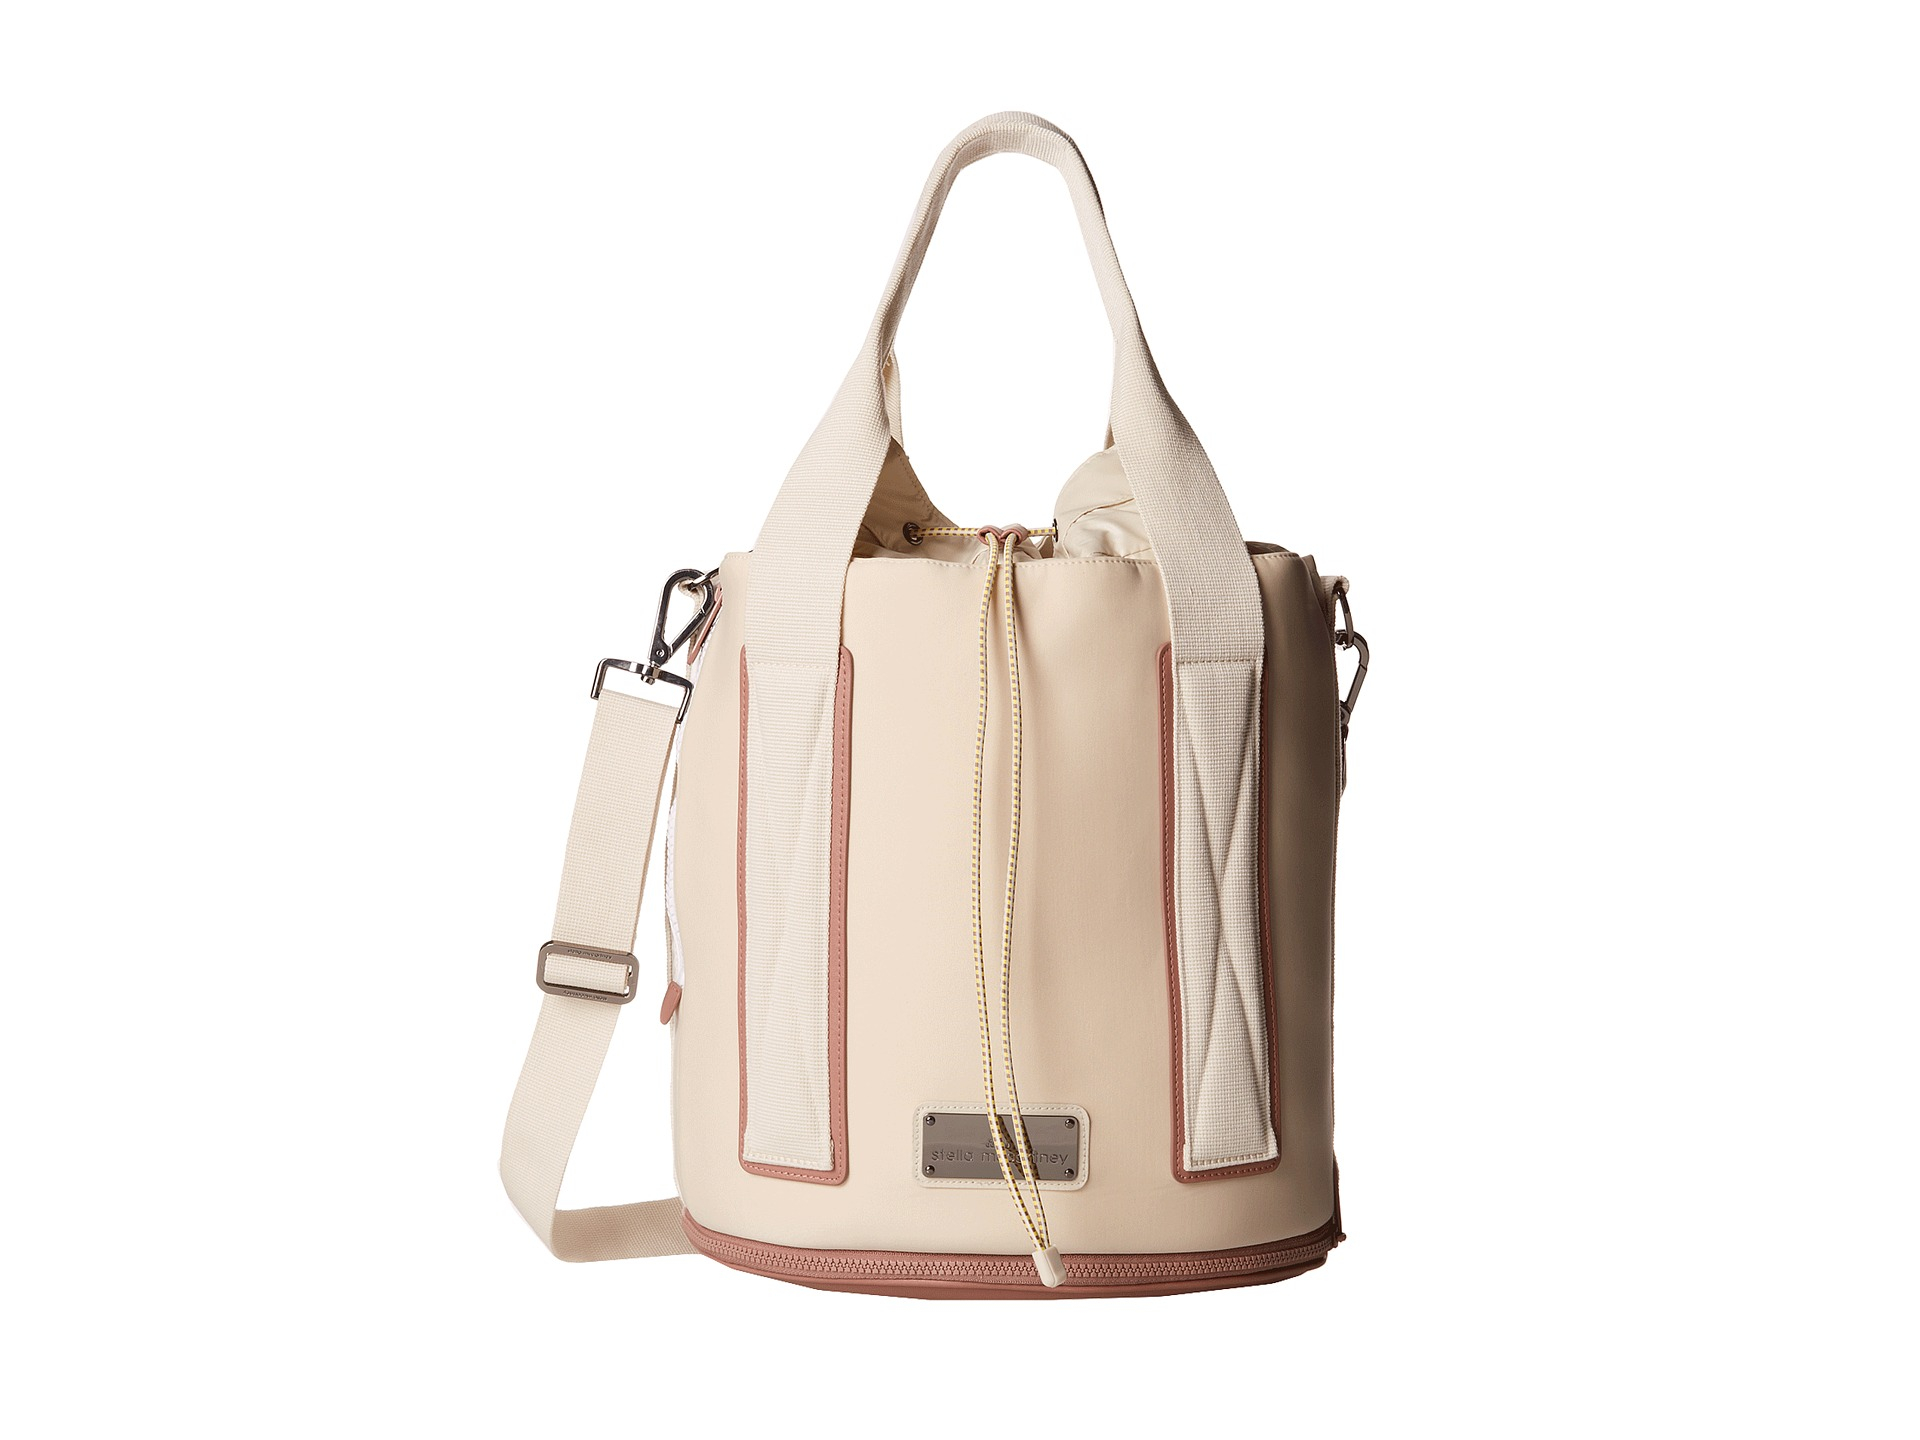 d56e022821 Adidas By Stella Mccartney Tennis Bag